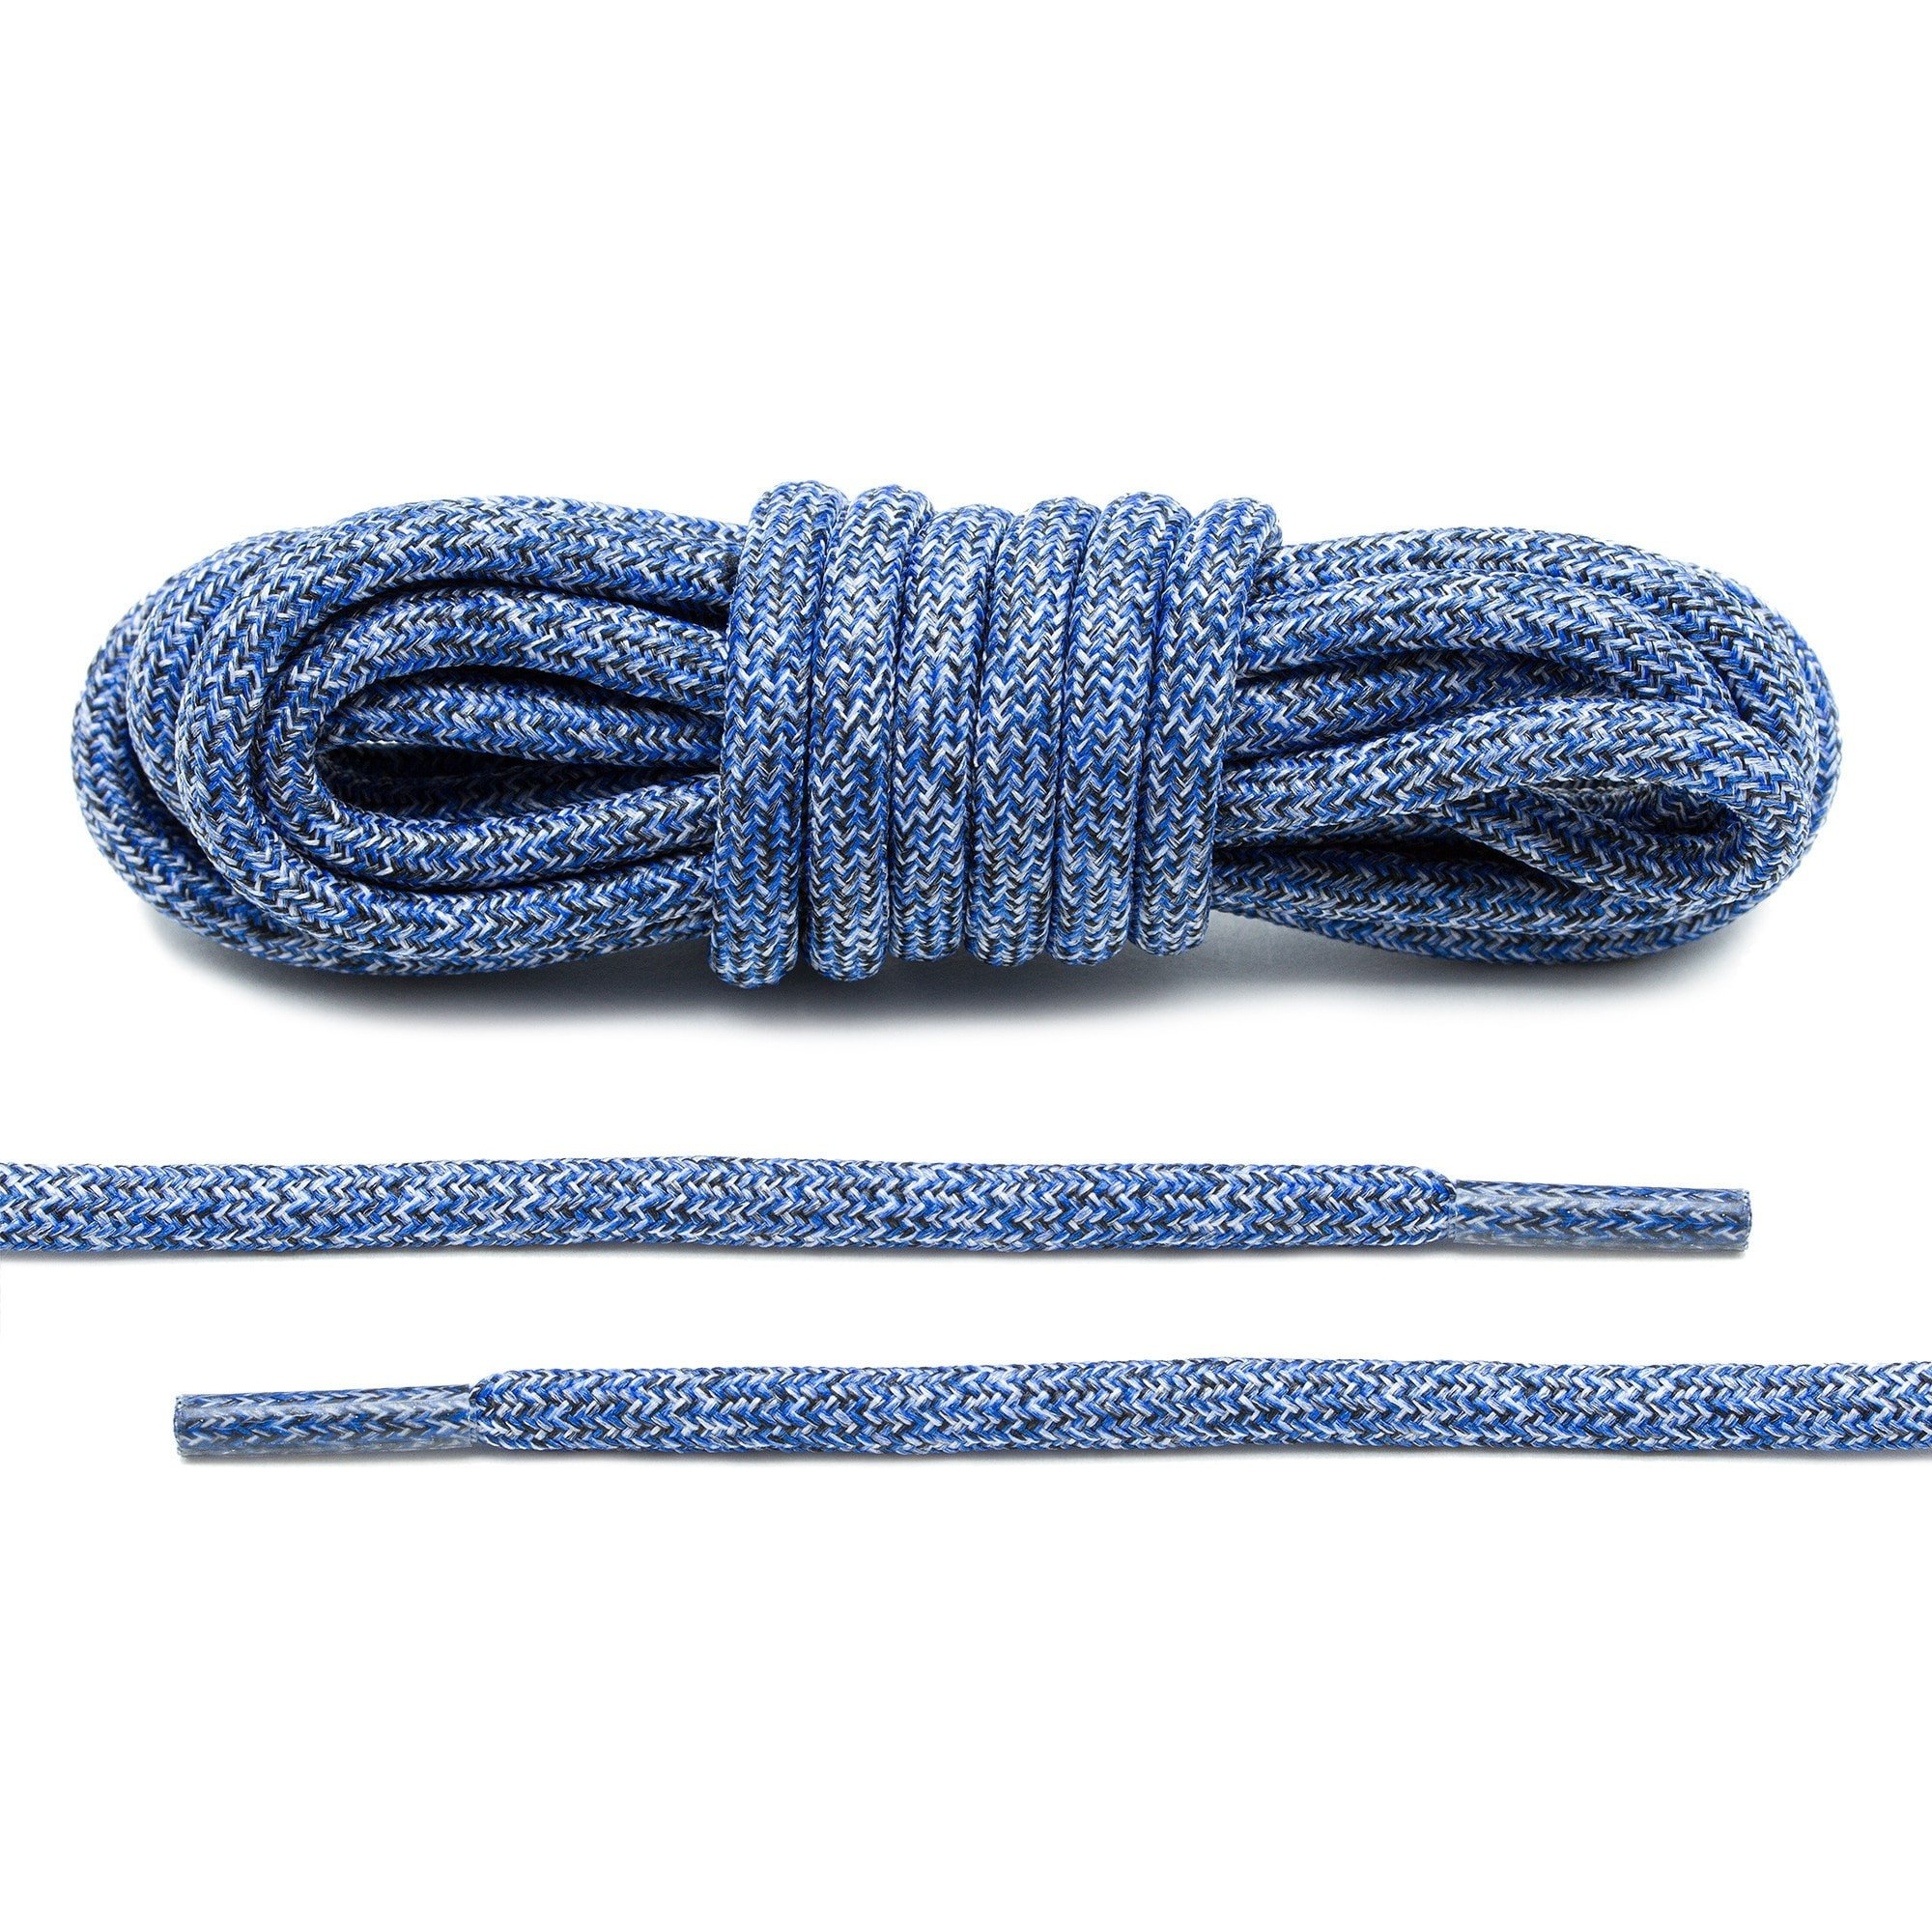 Blue rope photo